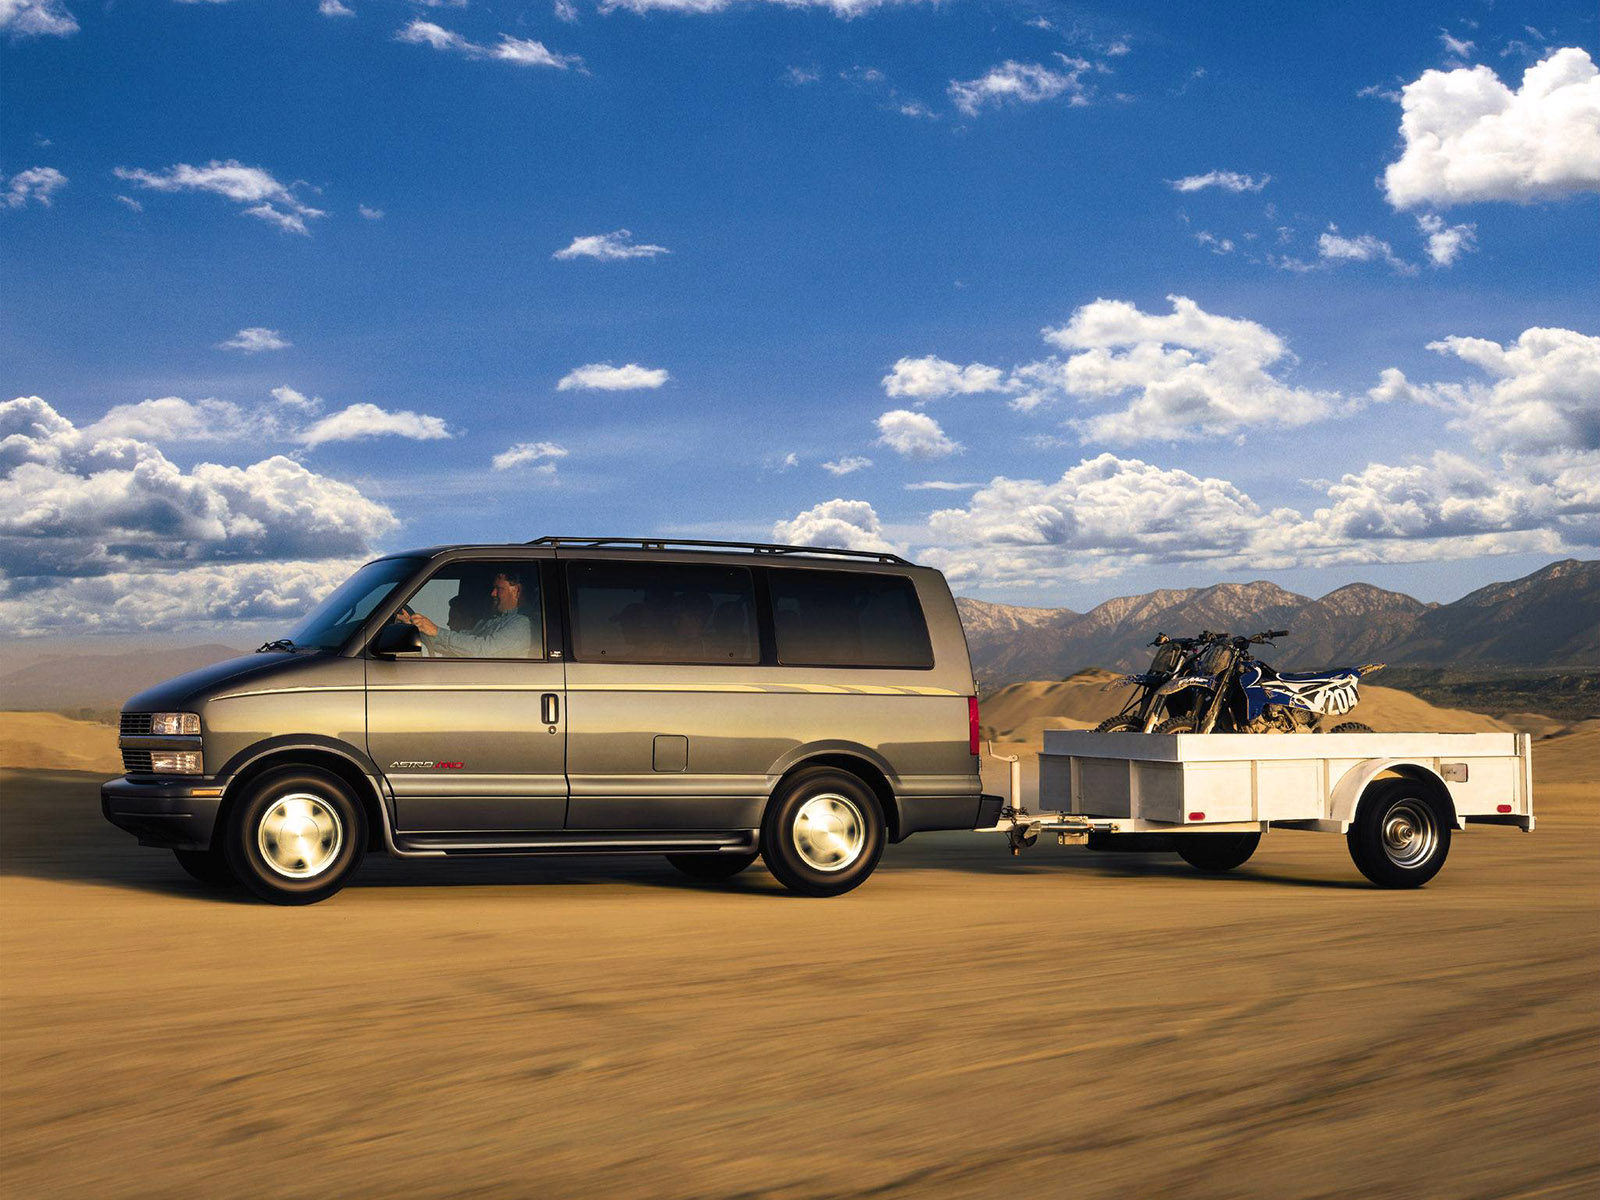 Chevrolet Astro Van photo 45685